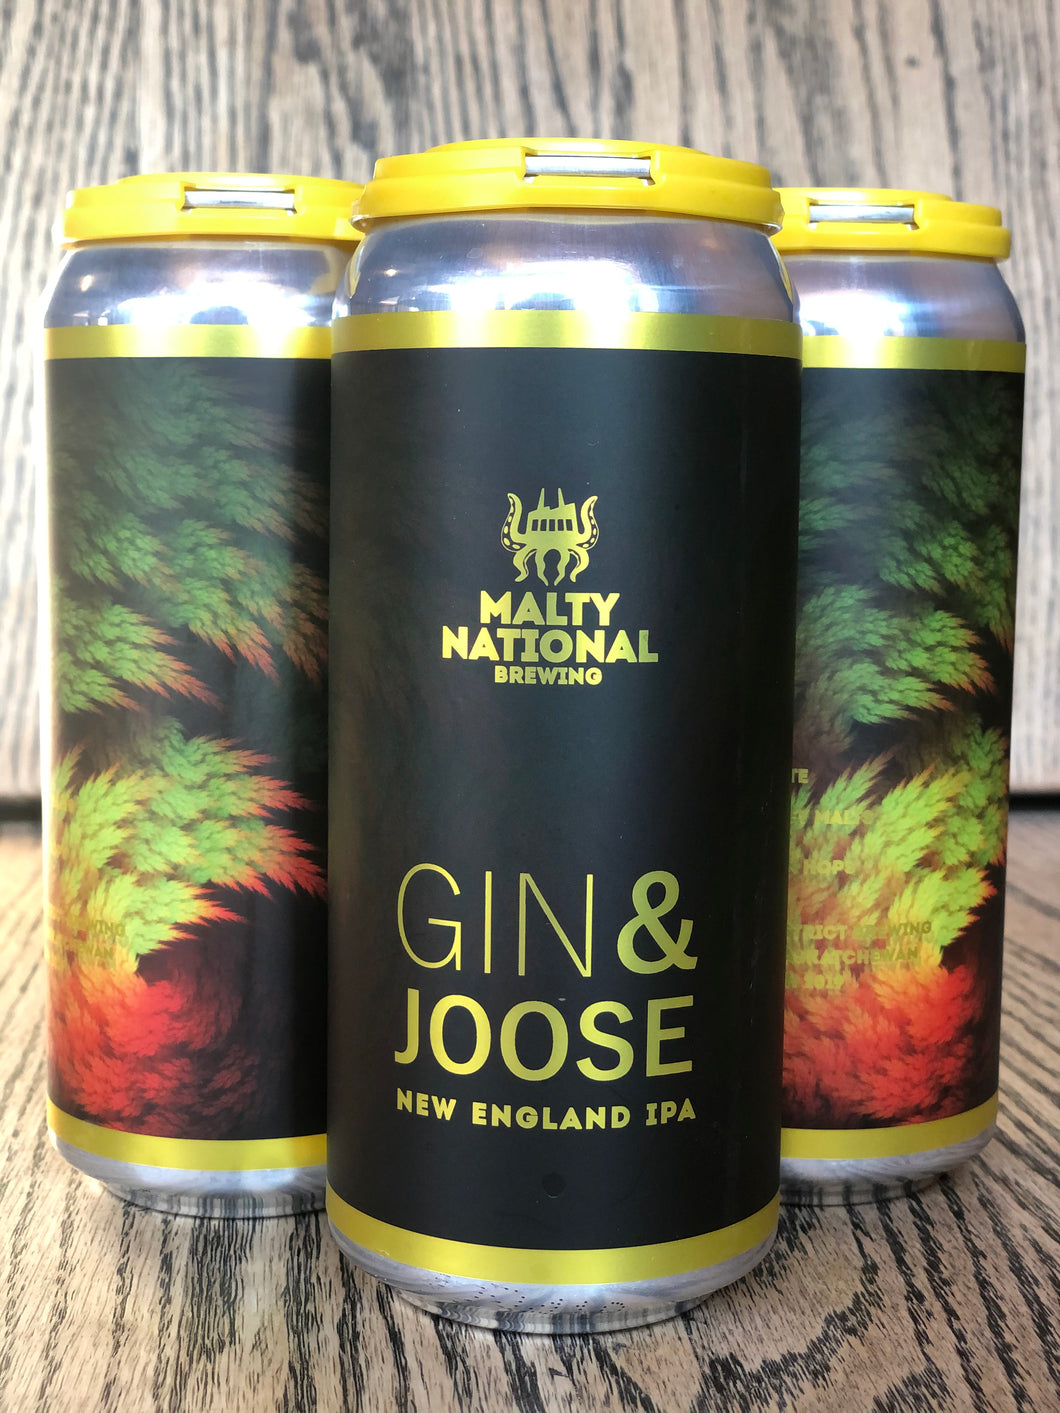 MALTY NATIONAL GIN & JOOSE (4 x 473ml)